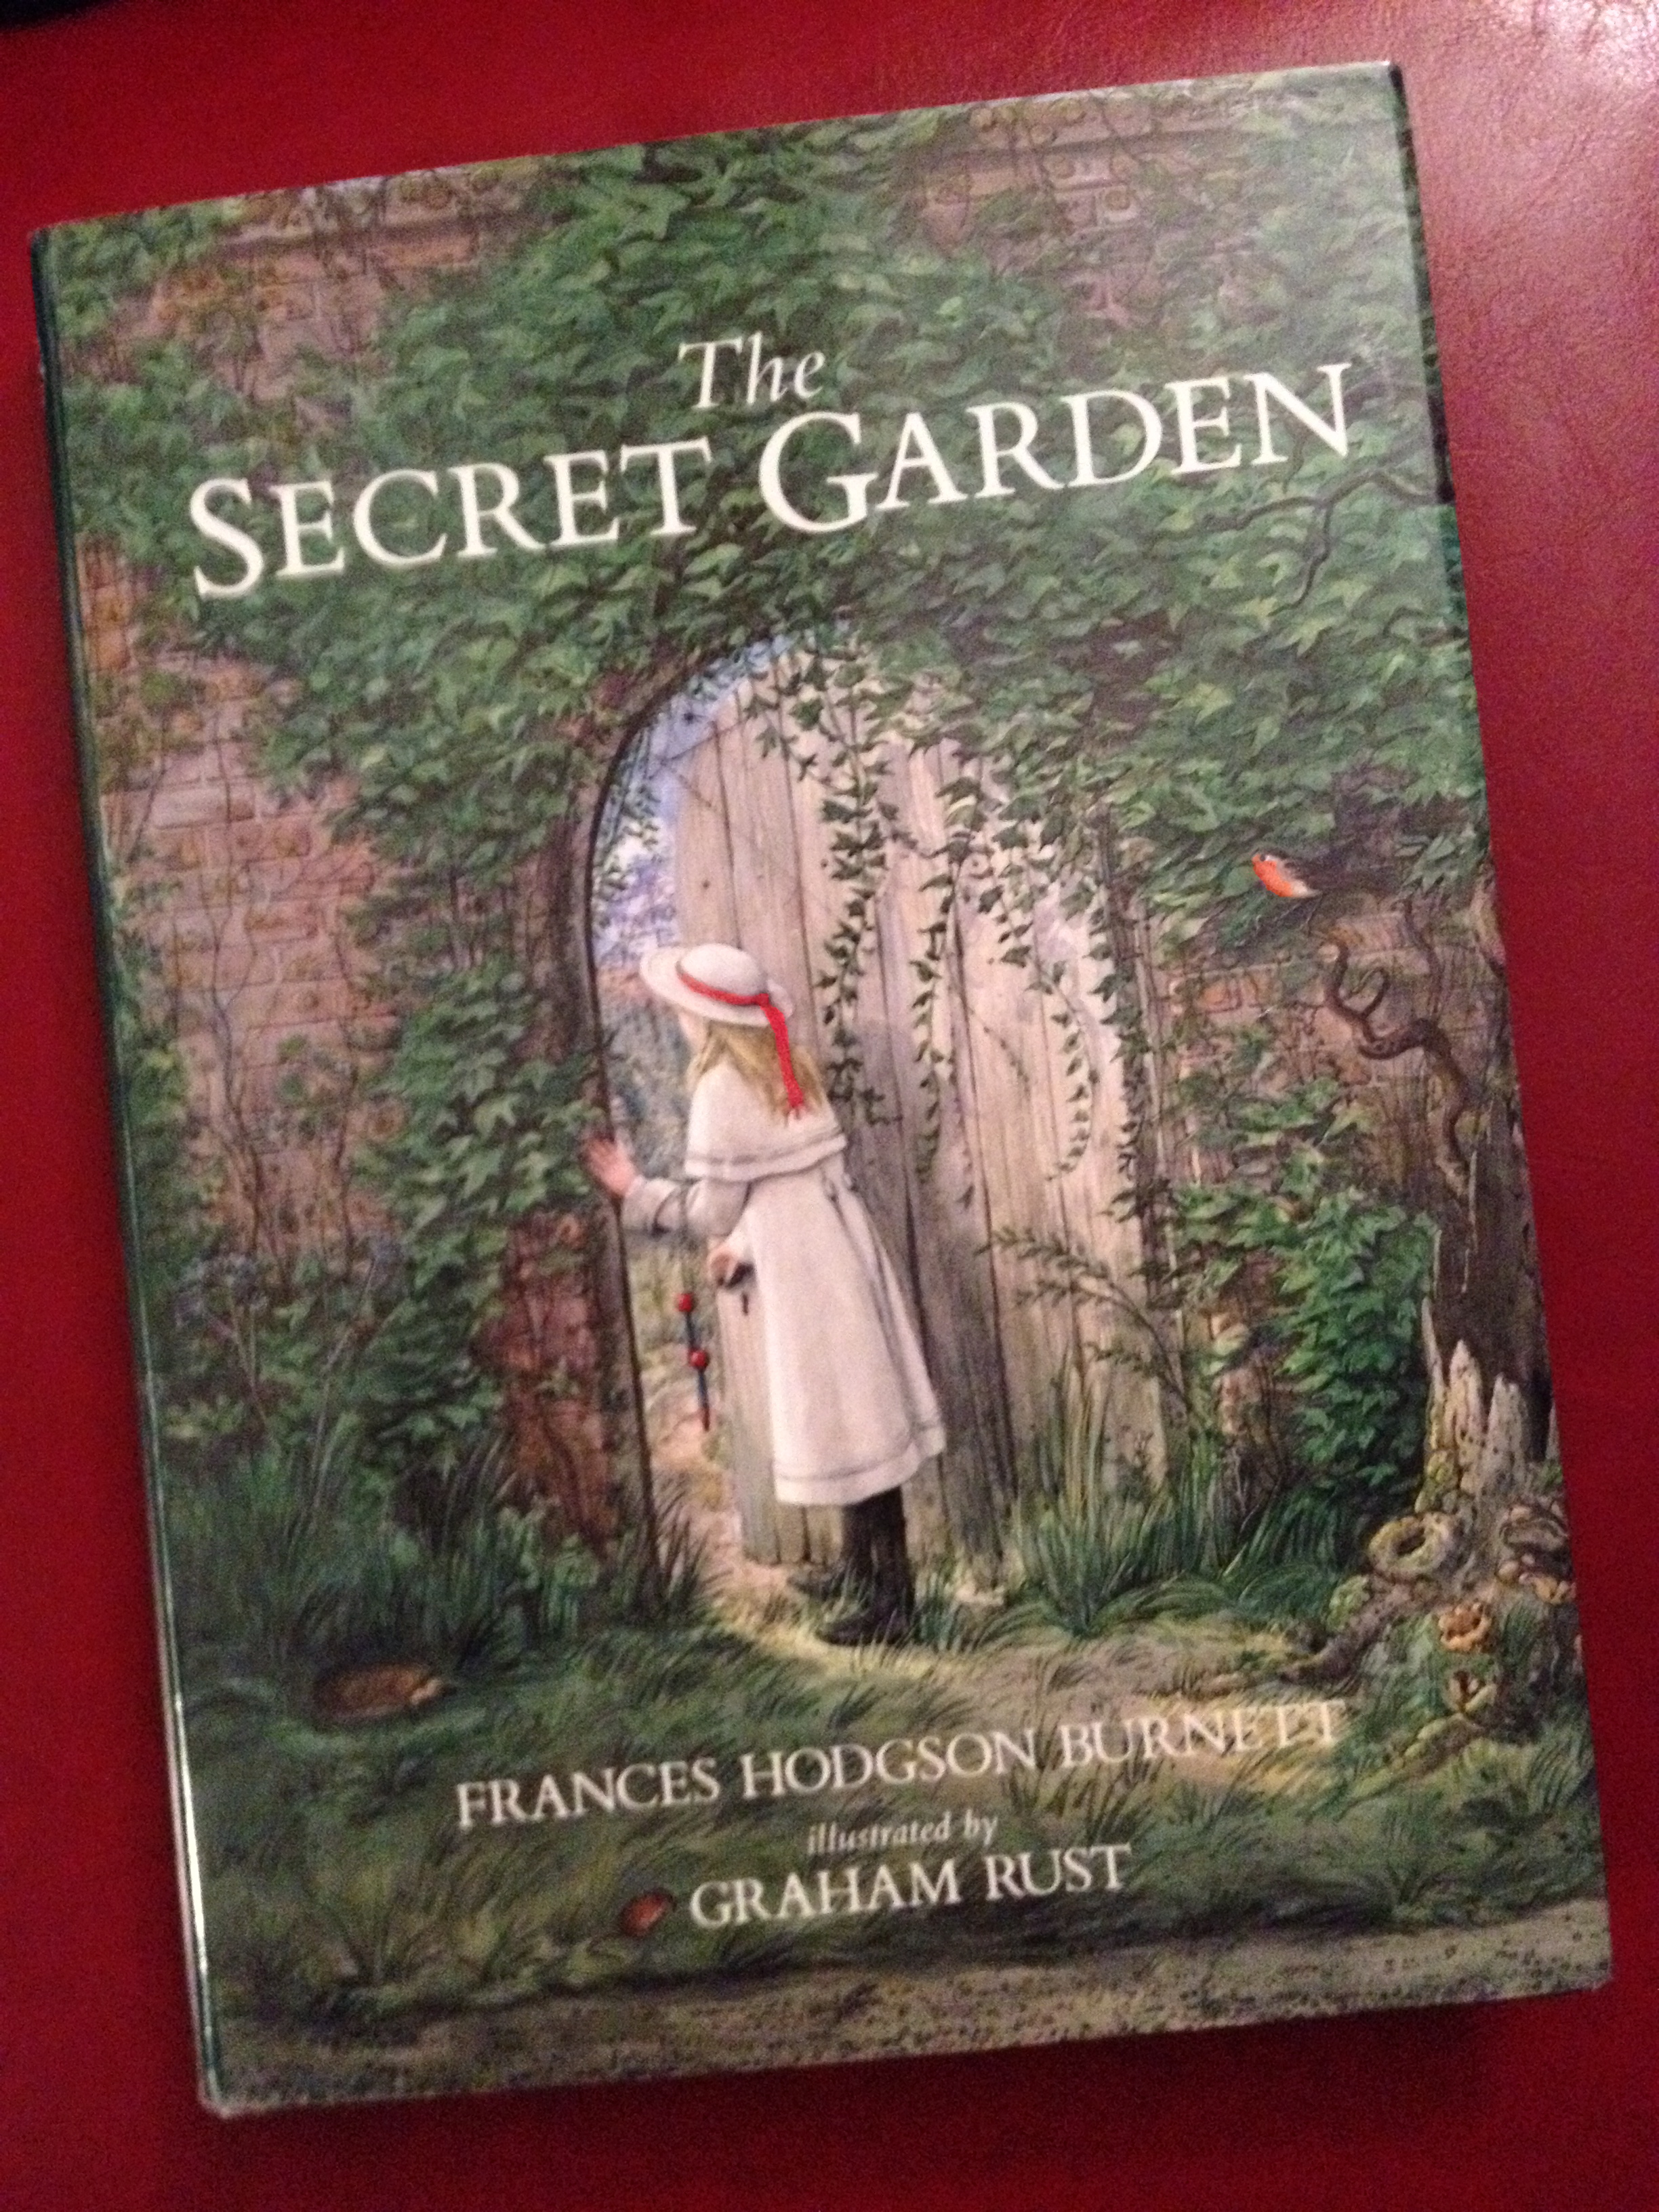 Secret Garden: On Judging Books By Their Beautiful Covers